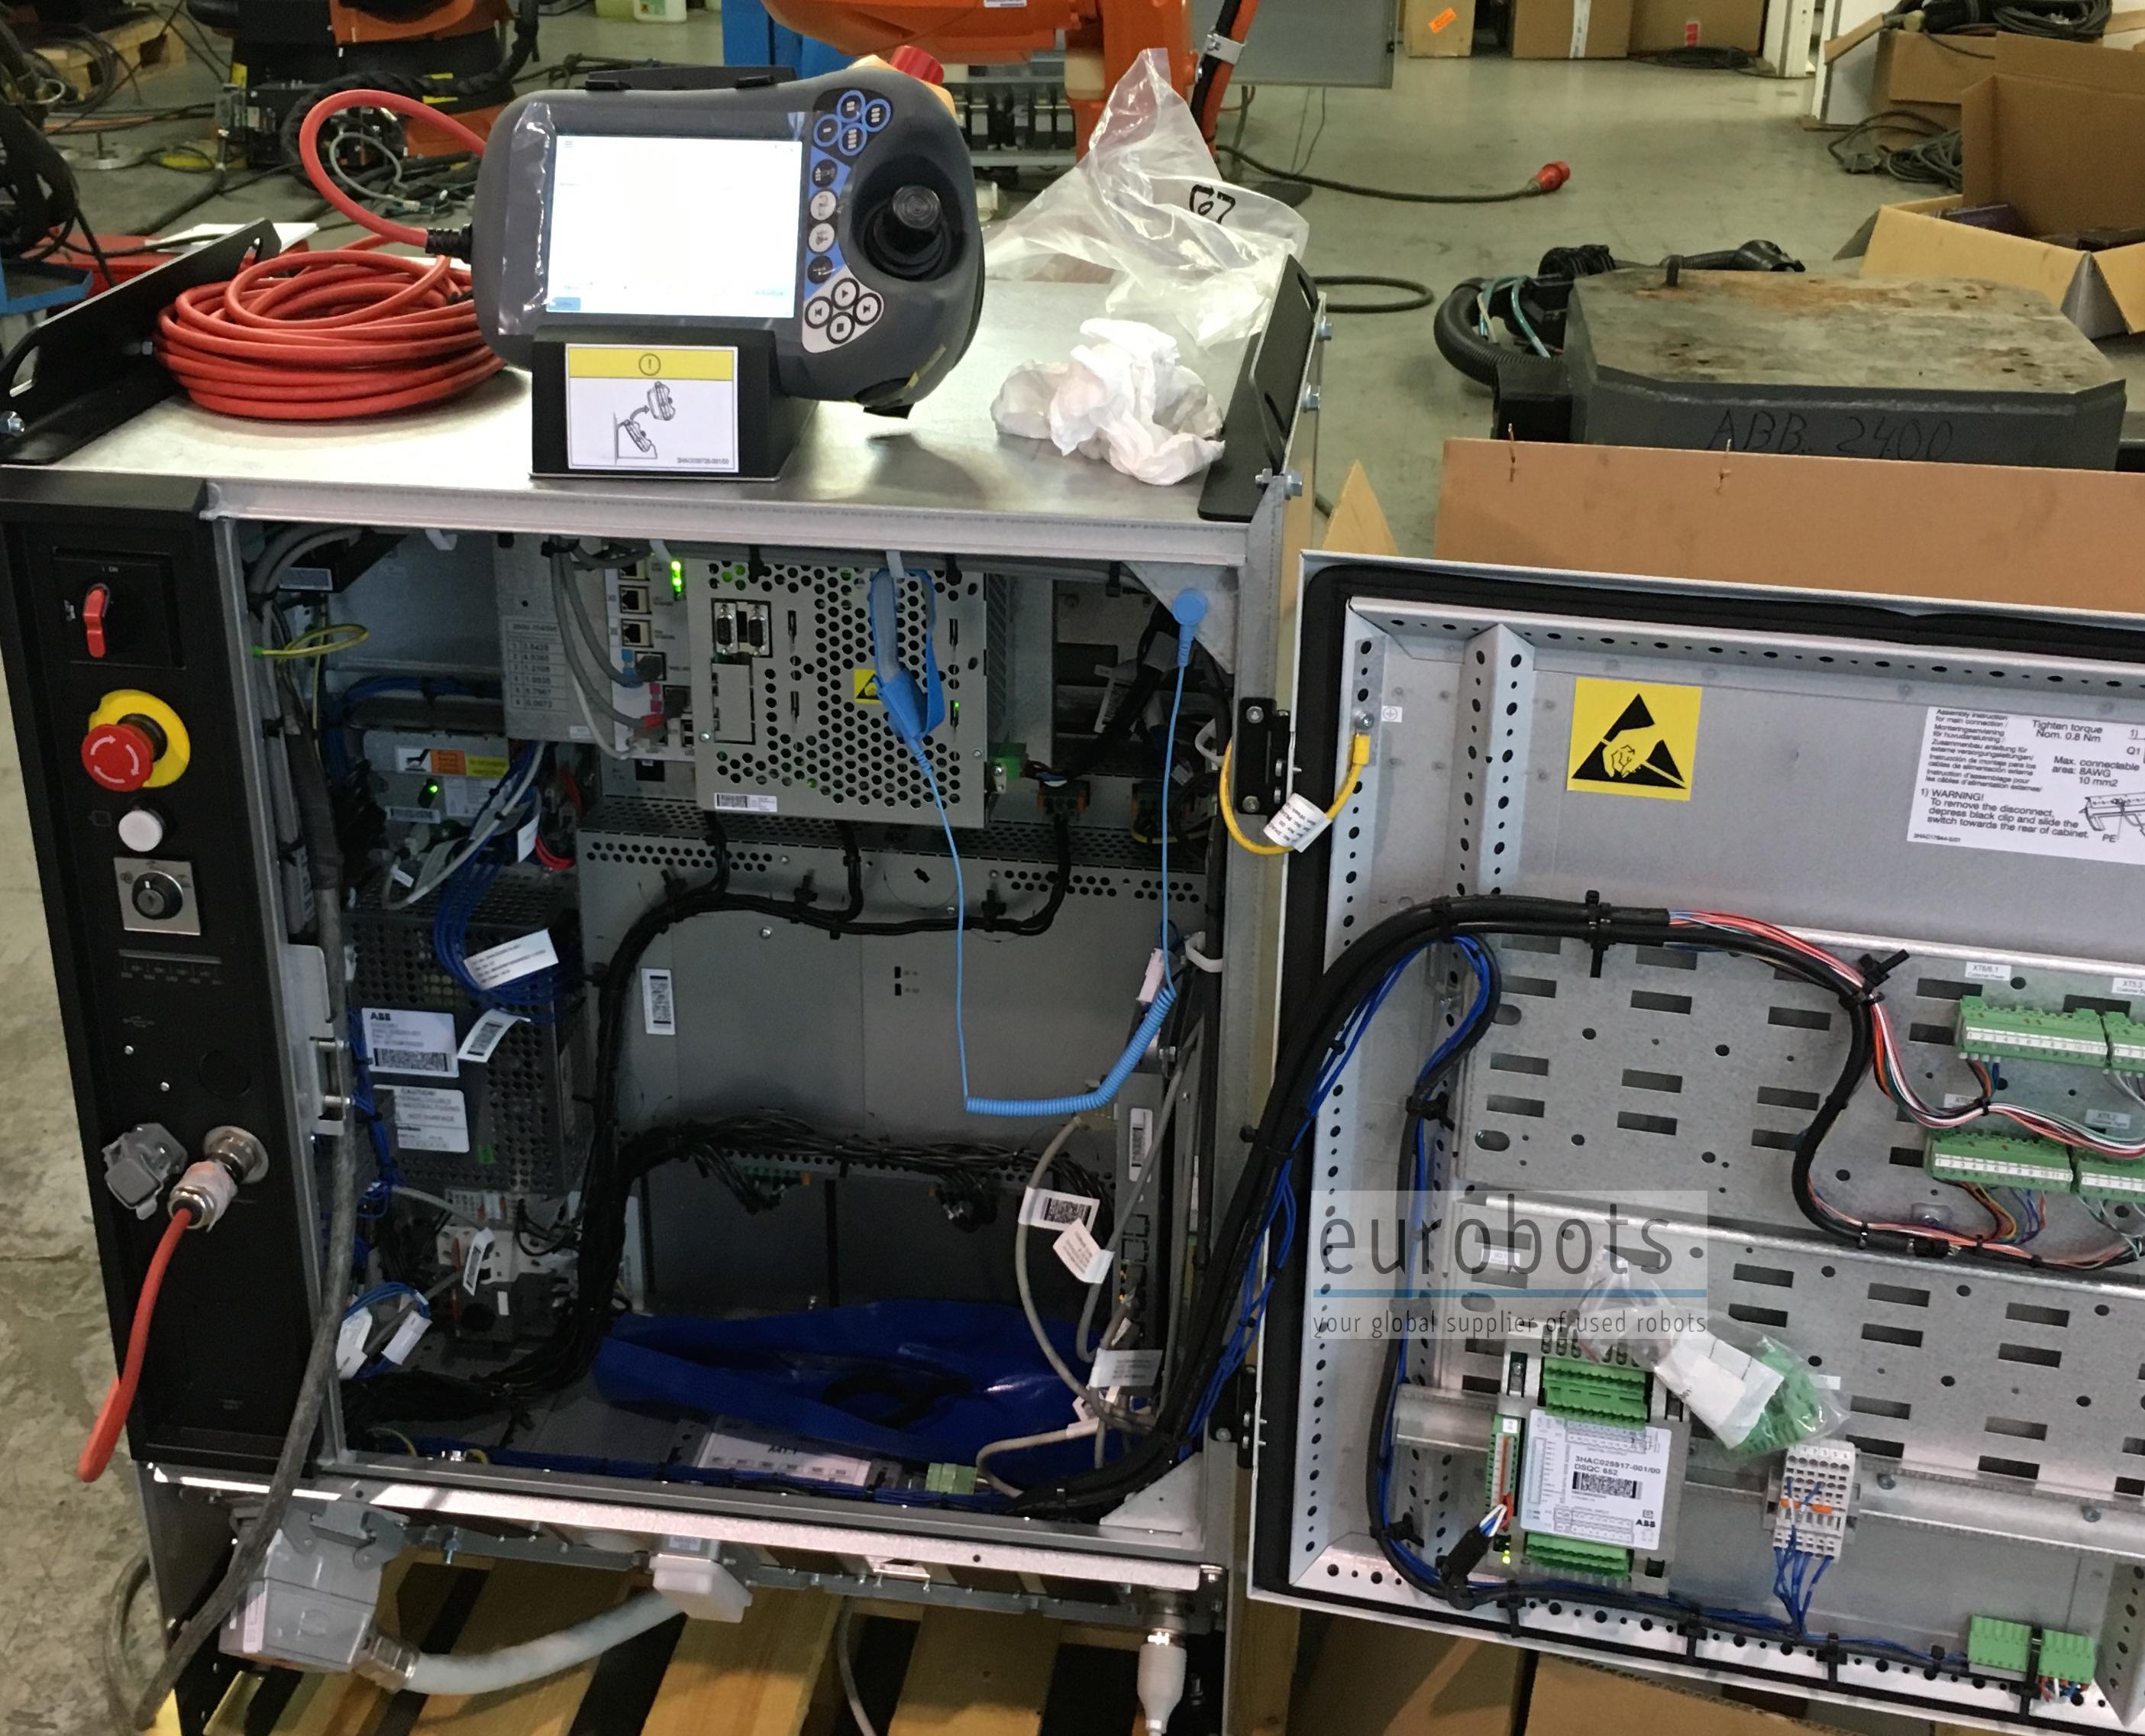 Abb Irc5 M2004 Wiring Diagram 29 Images Ach550 Det 280 Control Irb 2600 Foundry Plus Renovated Eurobots At